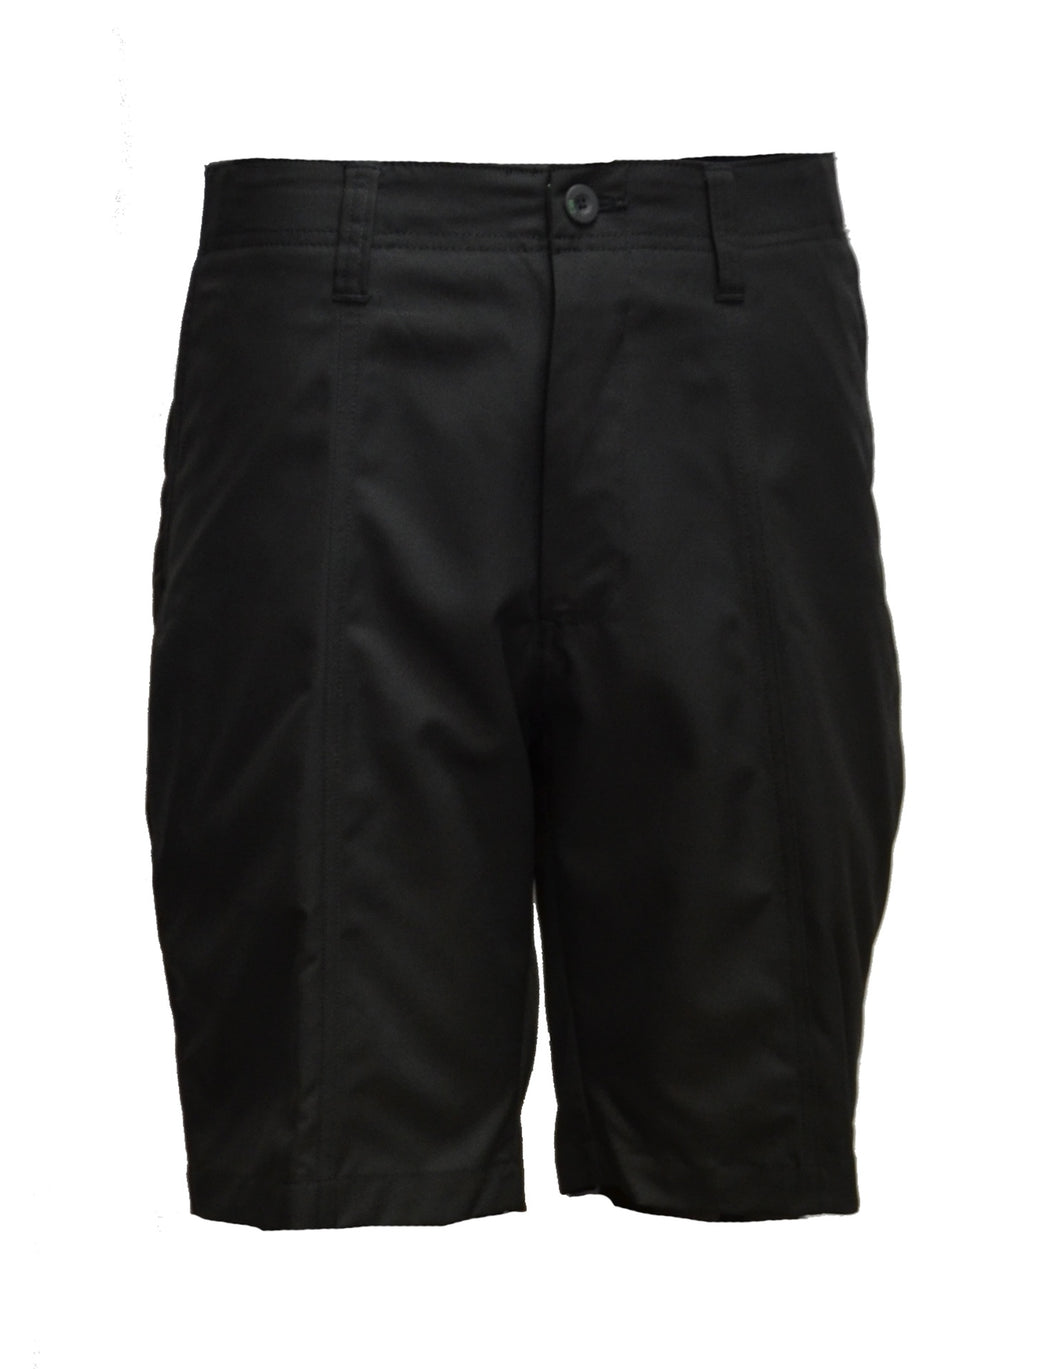 Haggar | ISK581 | Cool 18 Short | Black